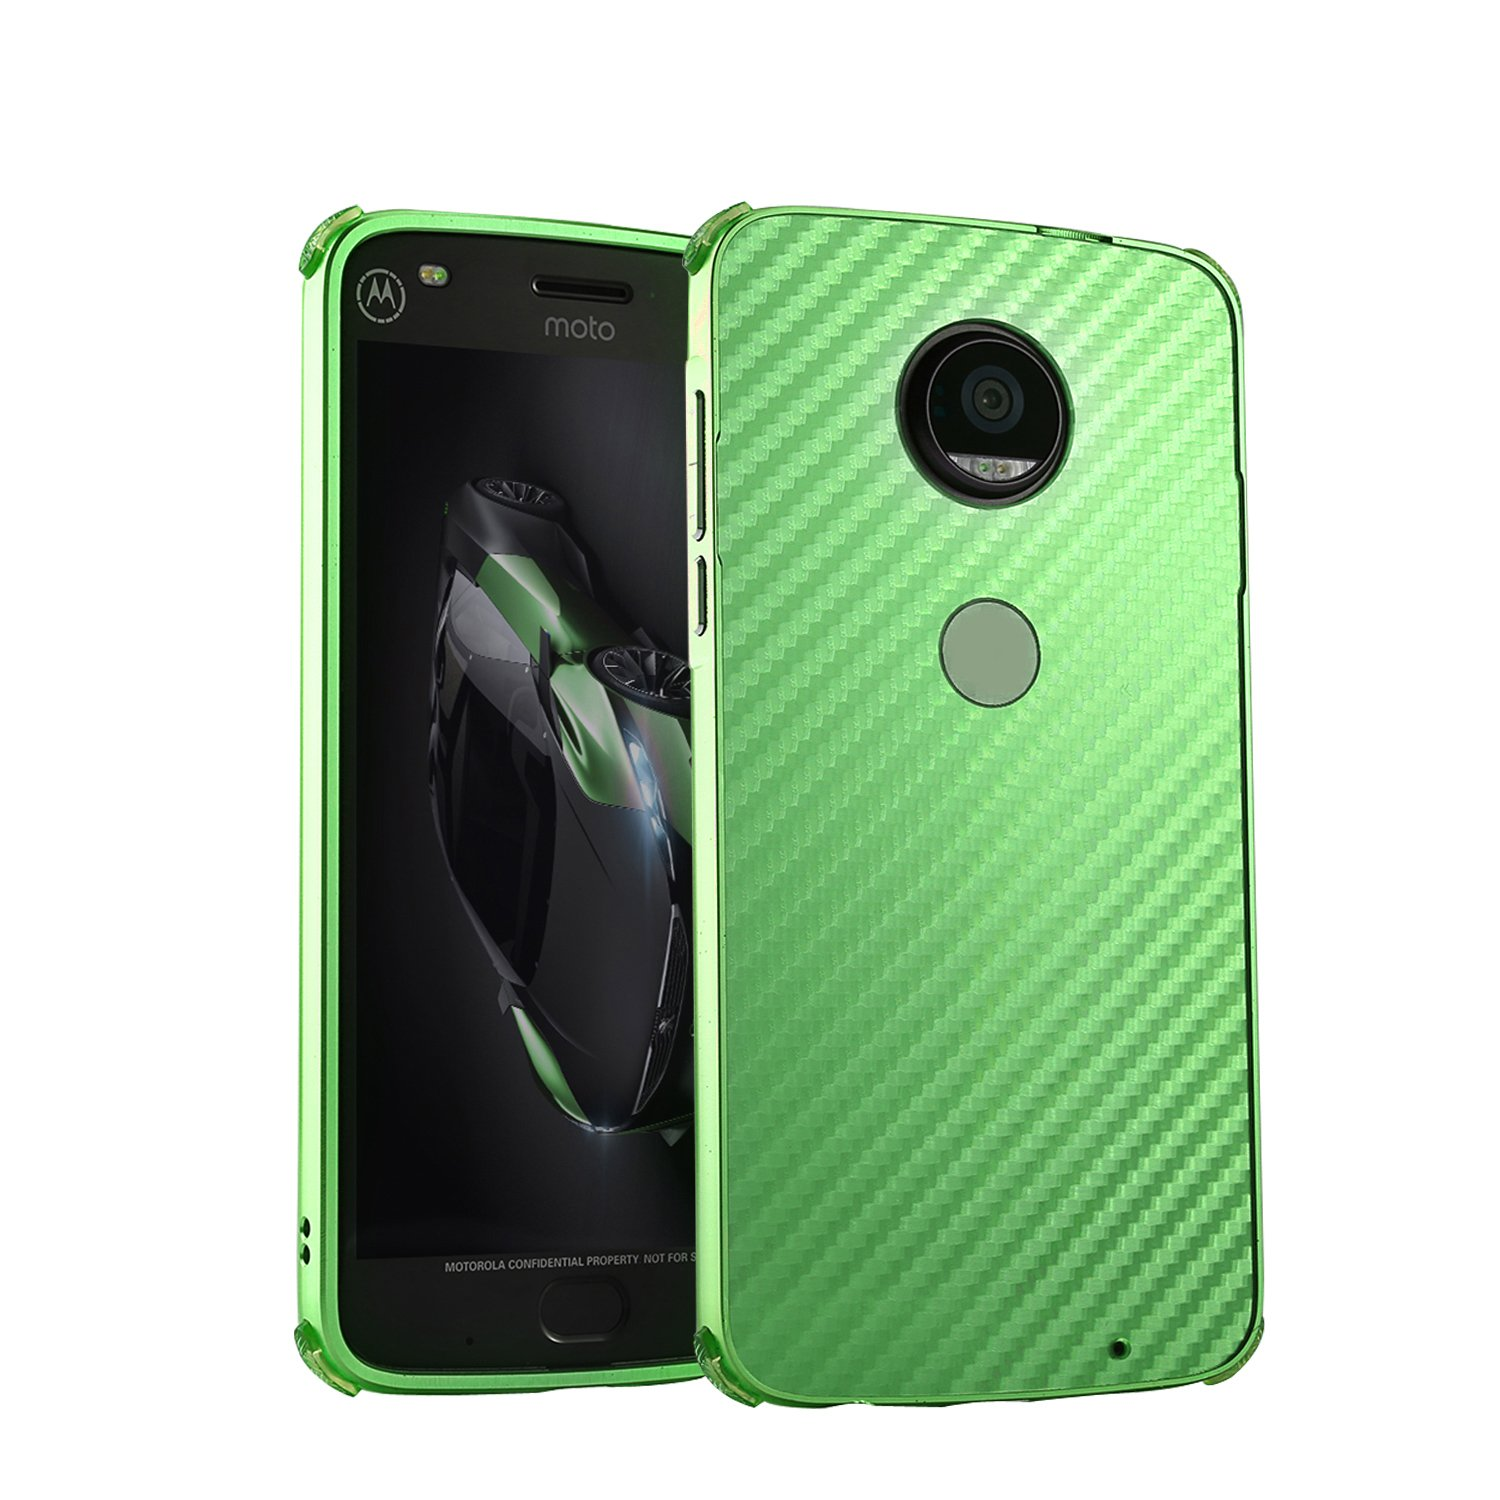 DAMONDY Moto G6 Plus Case, Luxury Carbon Fiber Design Ultra thin Imitation Metal Brushed Premium Aluminum Shockproof Protective Bumper Hard Back Cover Case for Motorola Moto G6 Plus-Green by DAMONDY